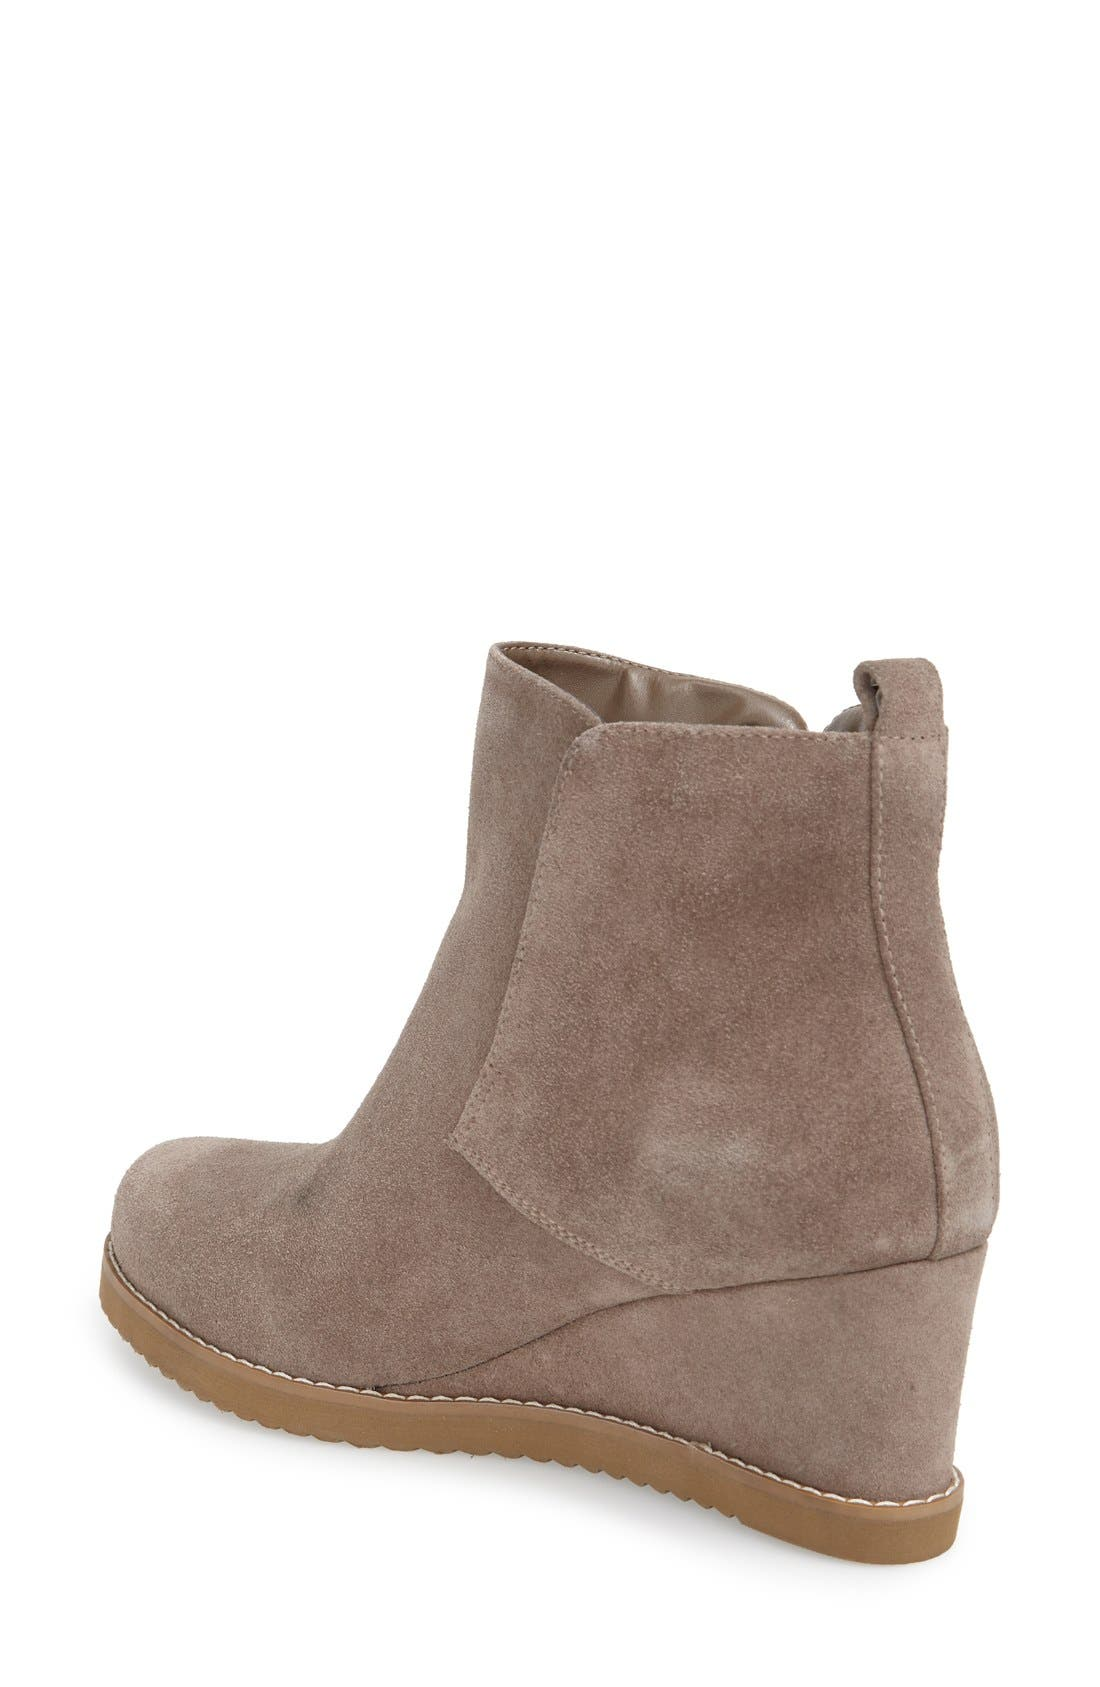 Alternate Image 2  - Blondo 'Karla' Waterproof Wedge Bootie (Women)